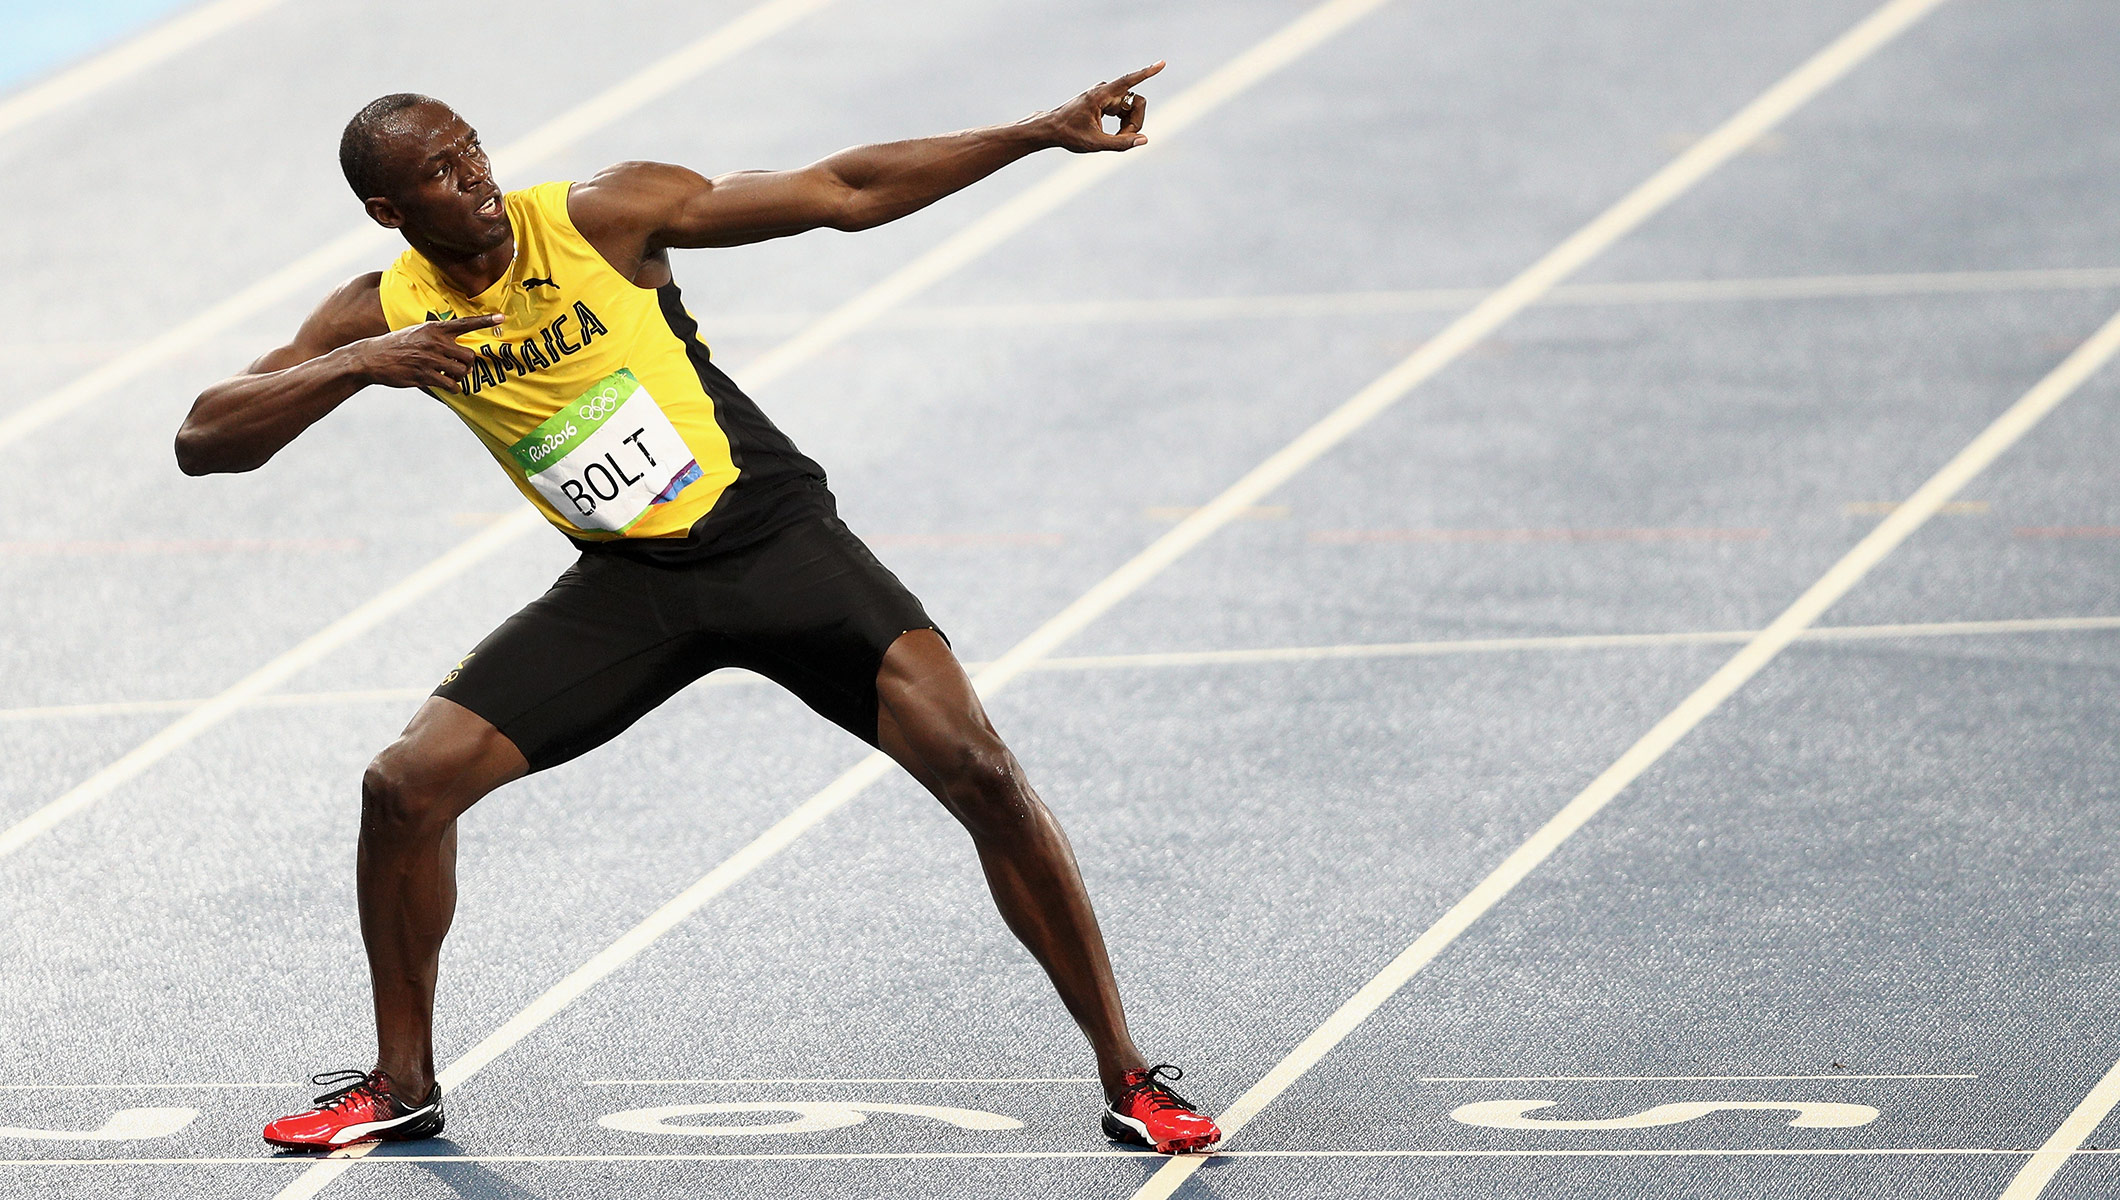 Bolt confirms status as greatest sprinter in history